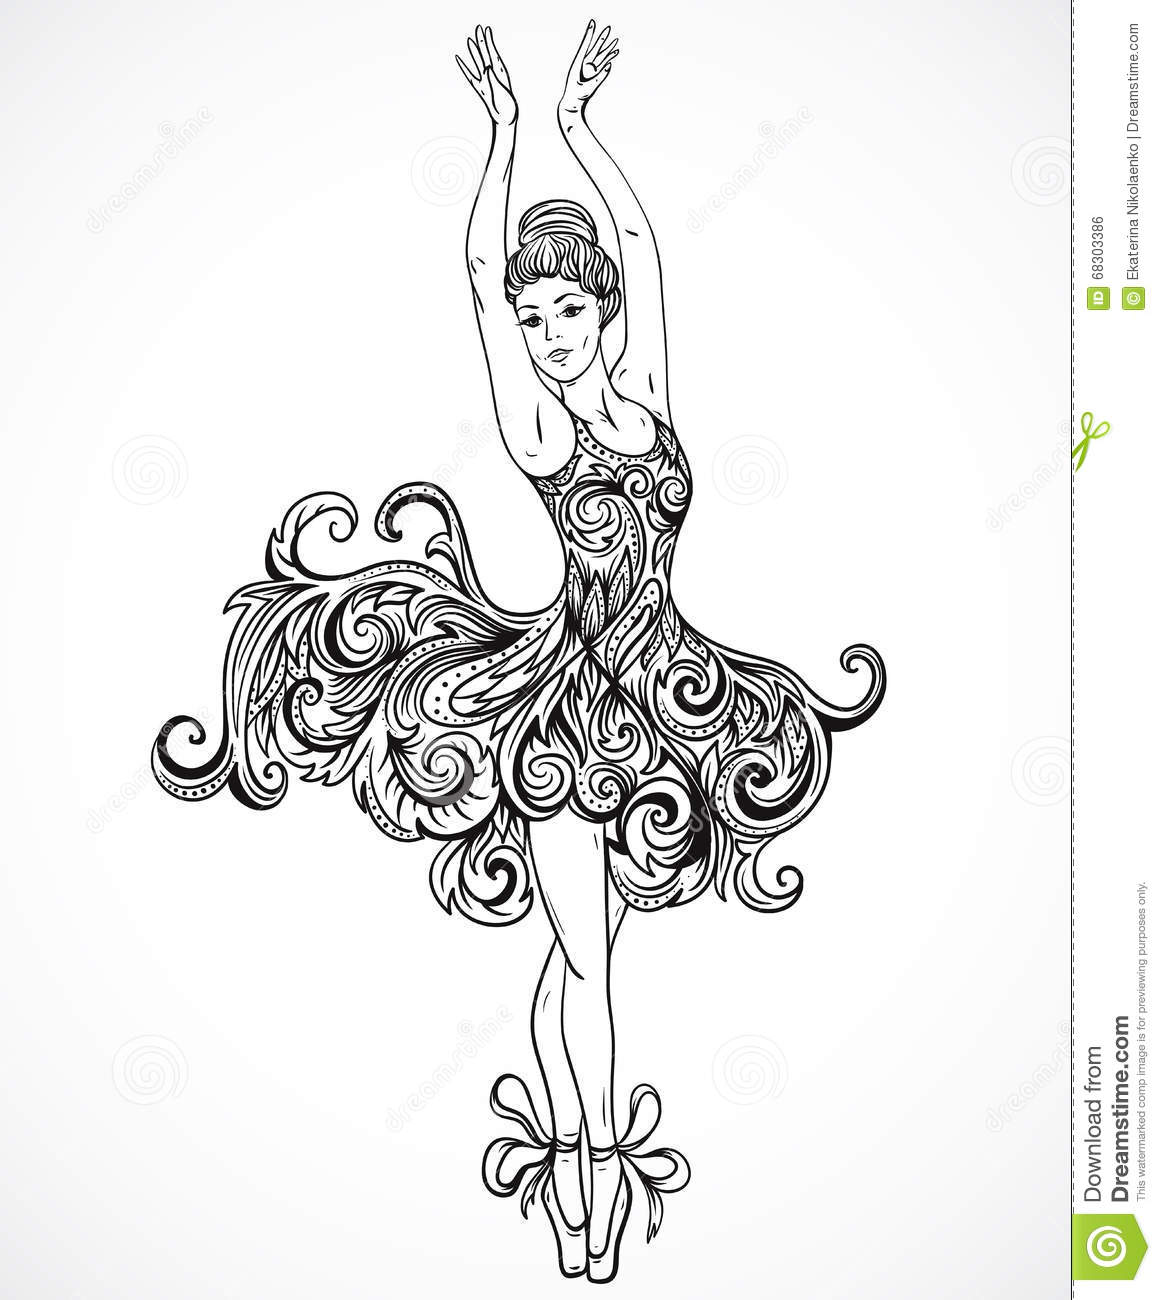 Drawn ballerine hand drawn Stock Vector of drawn Zen